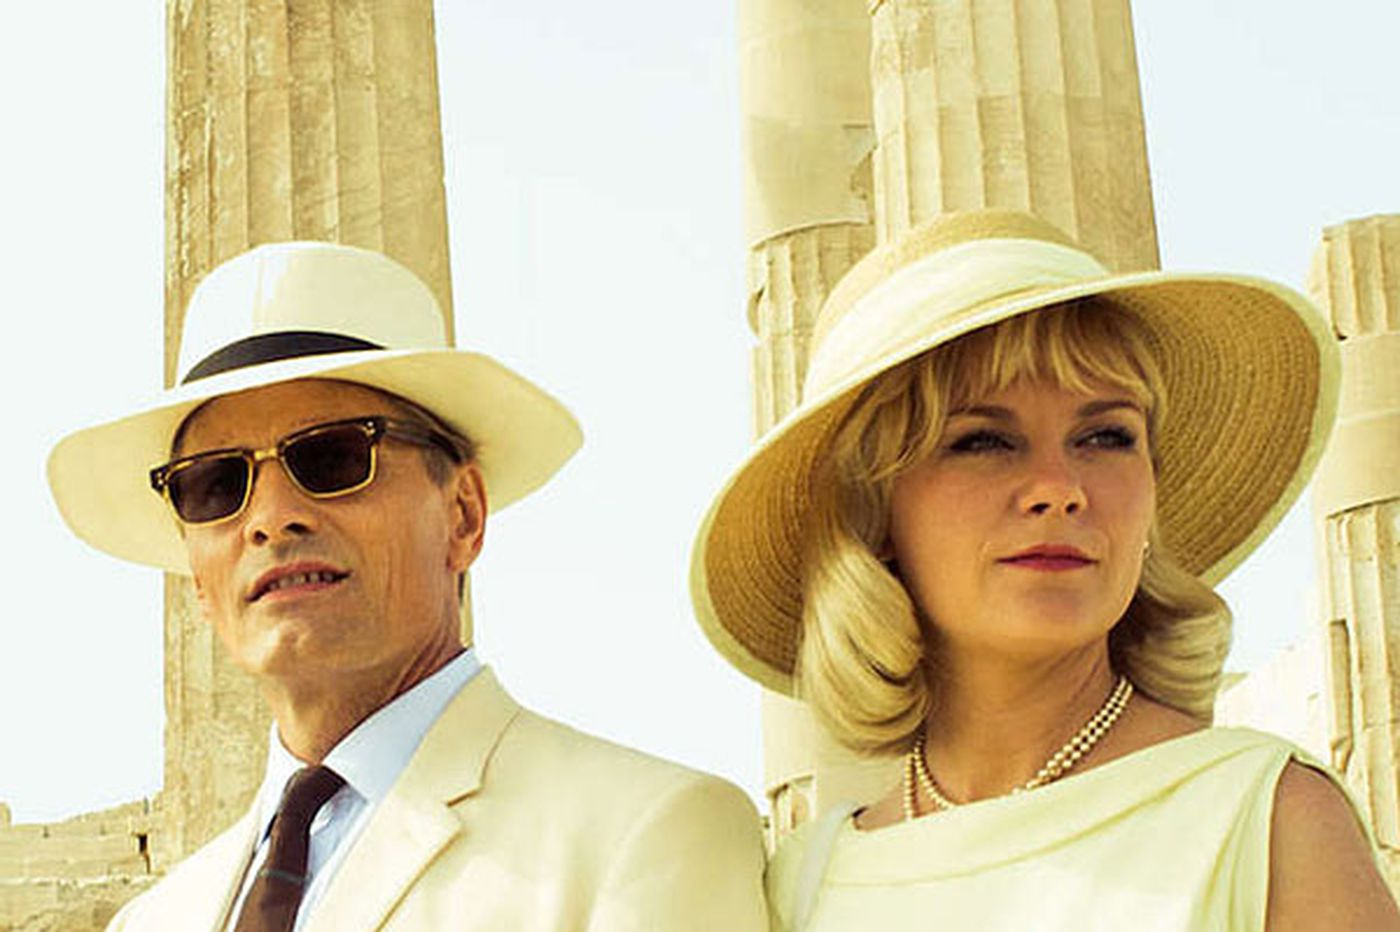 'The Two Faces of January': Greek holiday gone wrong, a film gone right